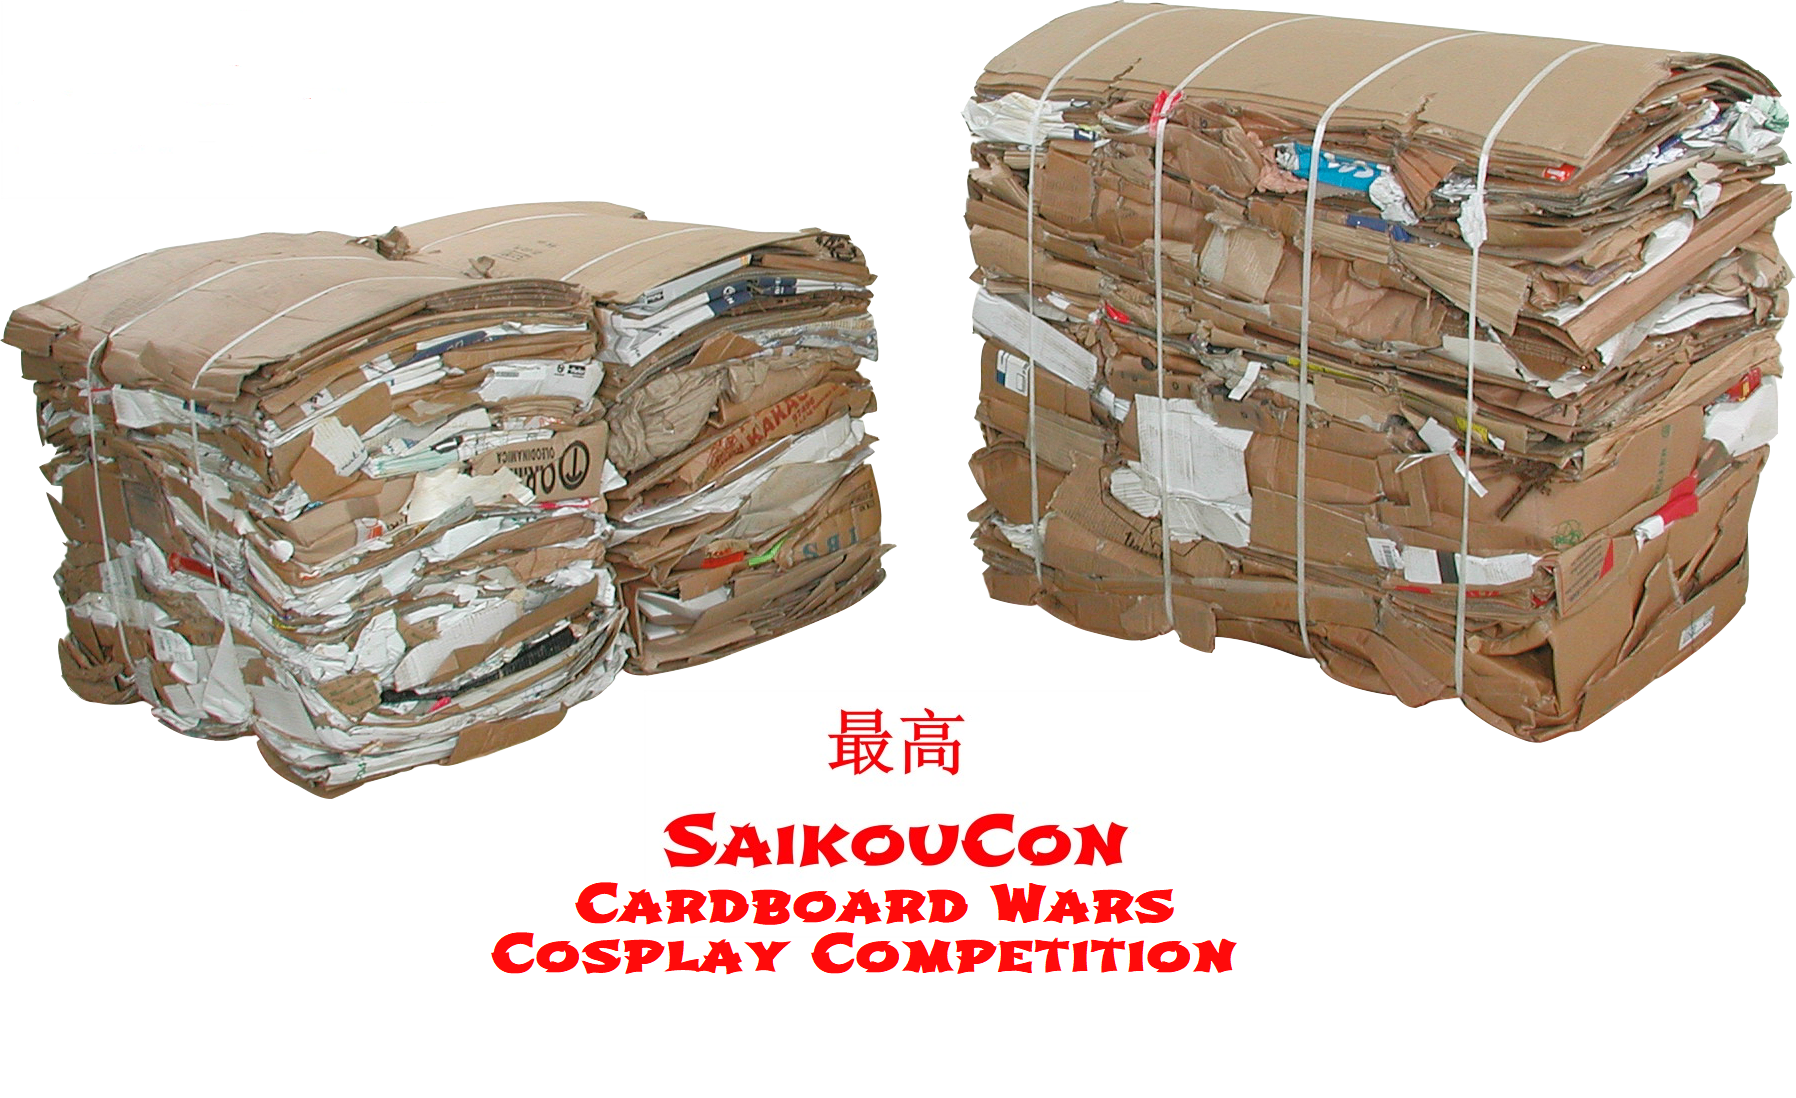 SaikouCon Cardboard Wars Cosplay Competition